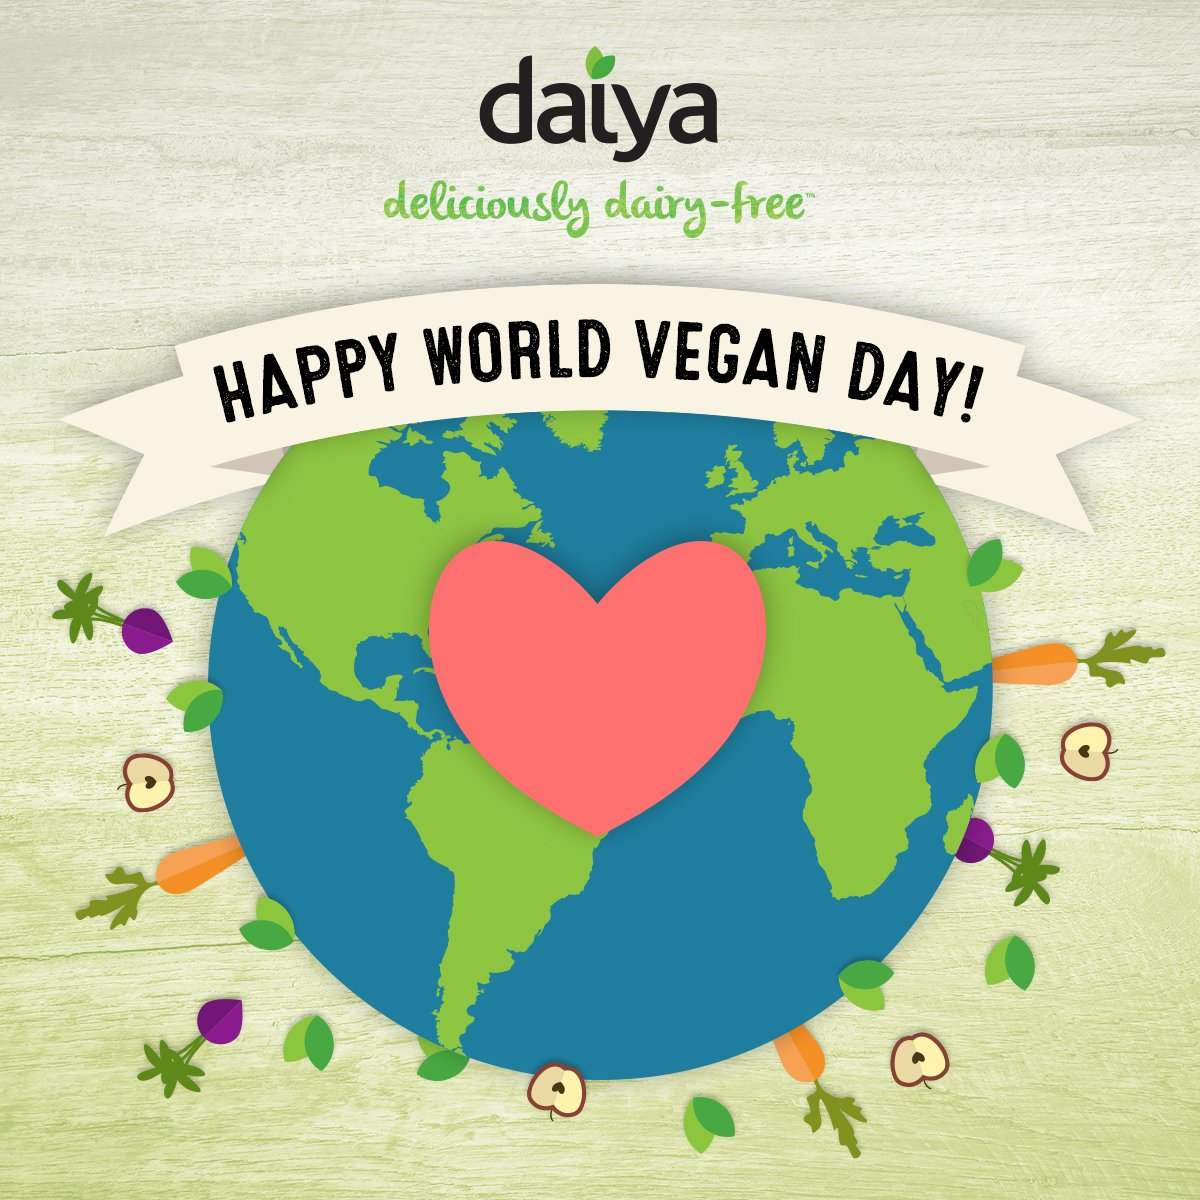 Happy #WorldVeganDay, everyone! https://t.co/5vAItdLuo9